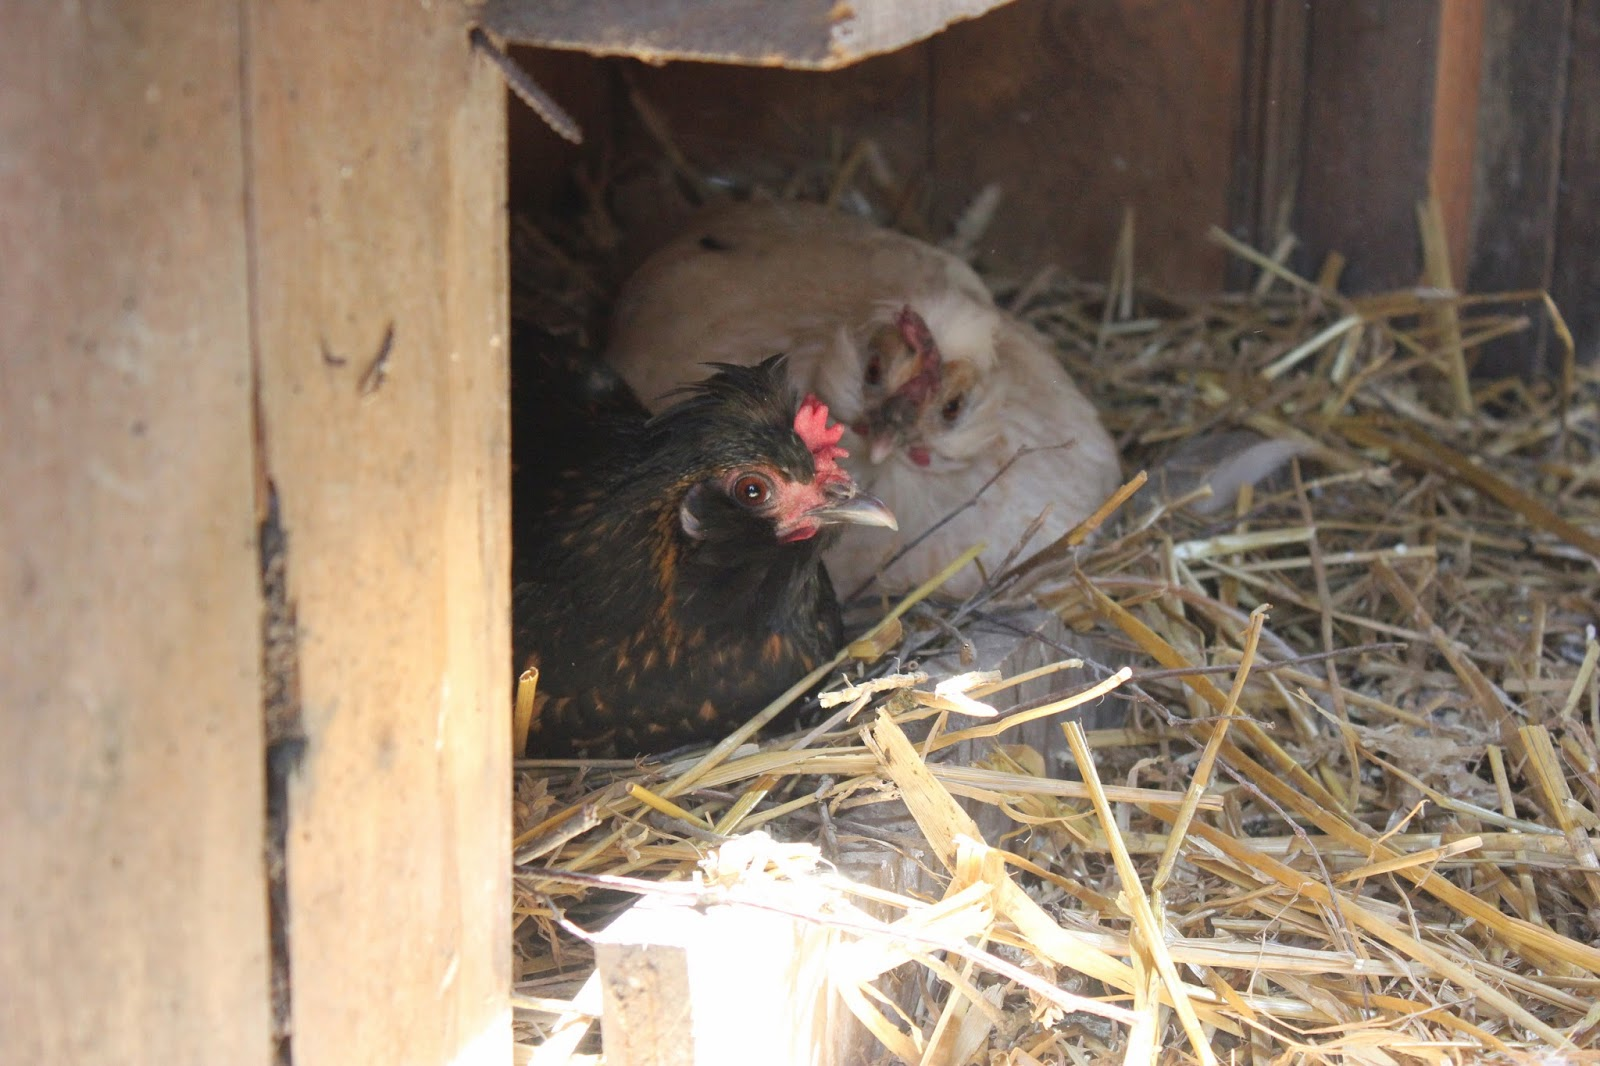 Hens laying in nestboxes